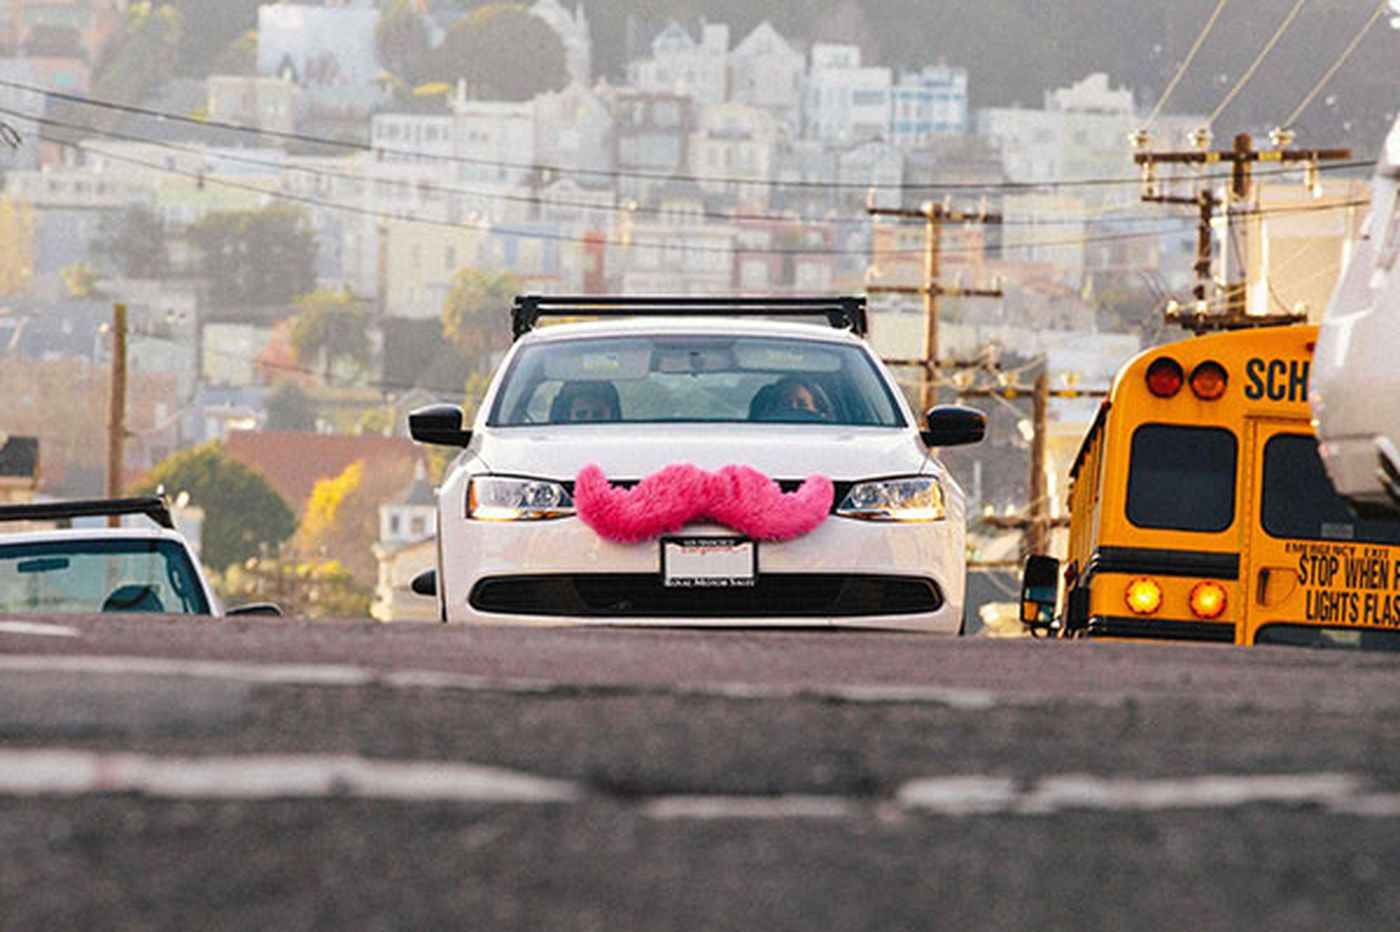 Lyft files for $100 million IPO